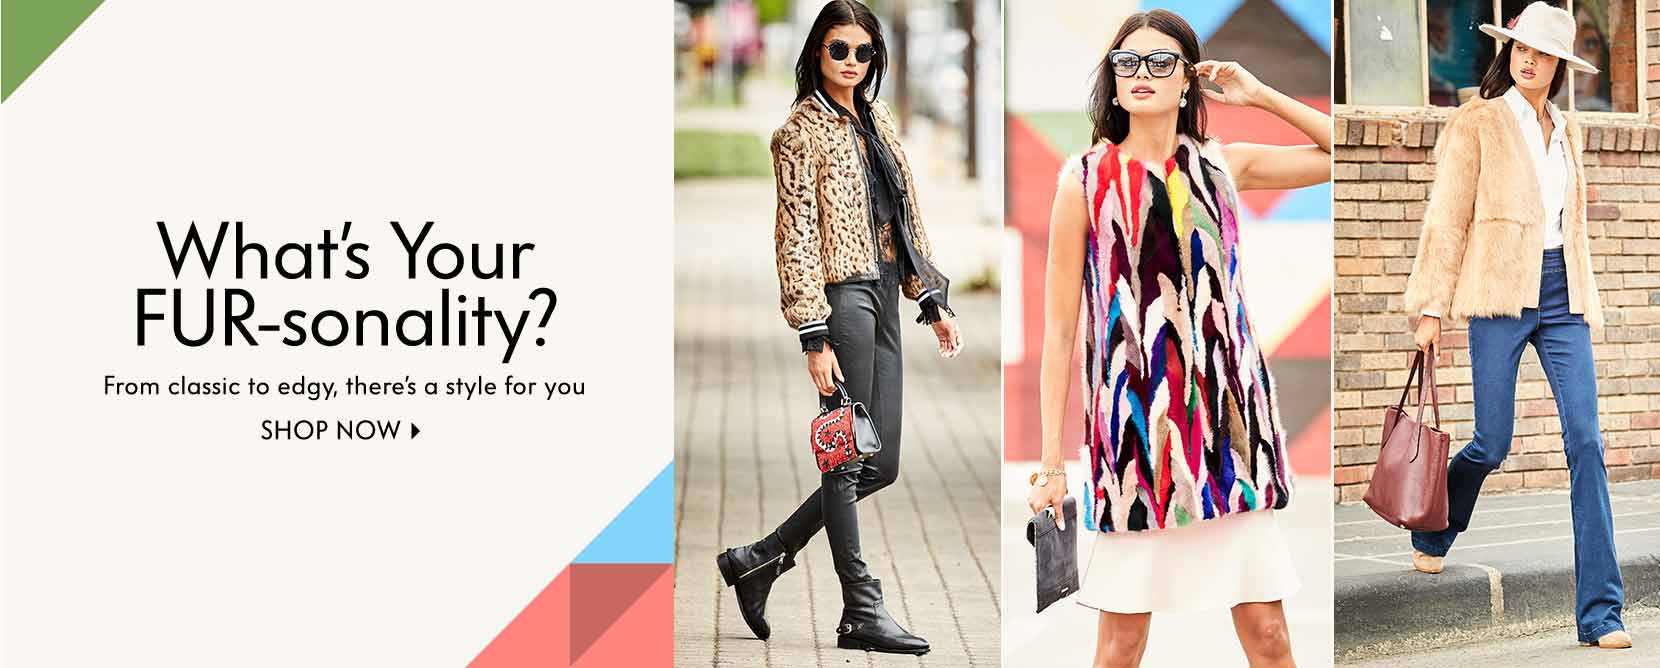 What???s Your FUR-sonality? From classic to edgy, there???s a style for you Shop now